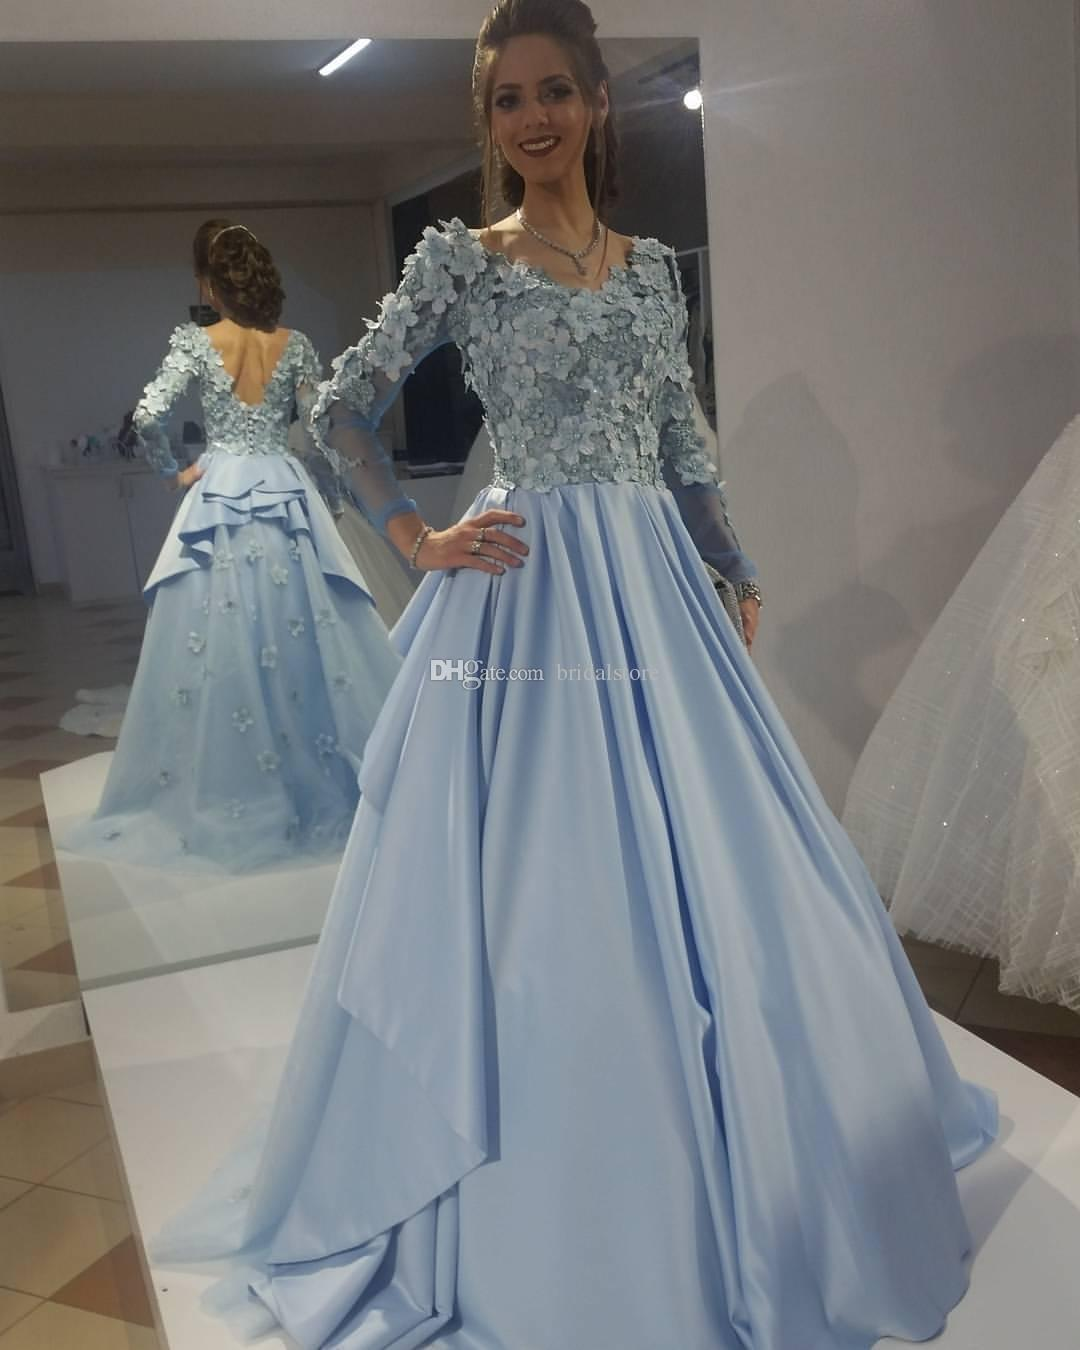 205f31fa40 Stunning Baby Blue Elie Saab Evening Gowns Vintage Puffy Top 3D Floral  Appliques Long Sleeves Modest Prom Dress Low Back Arabic Dresses 2019 Ivory  Evening ...